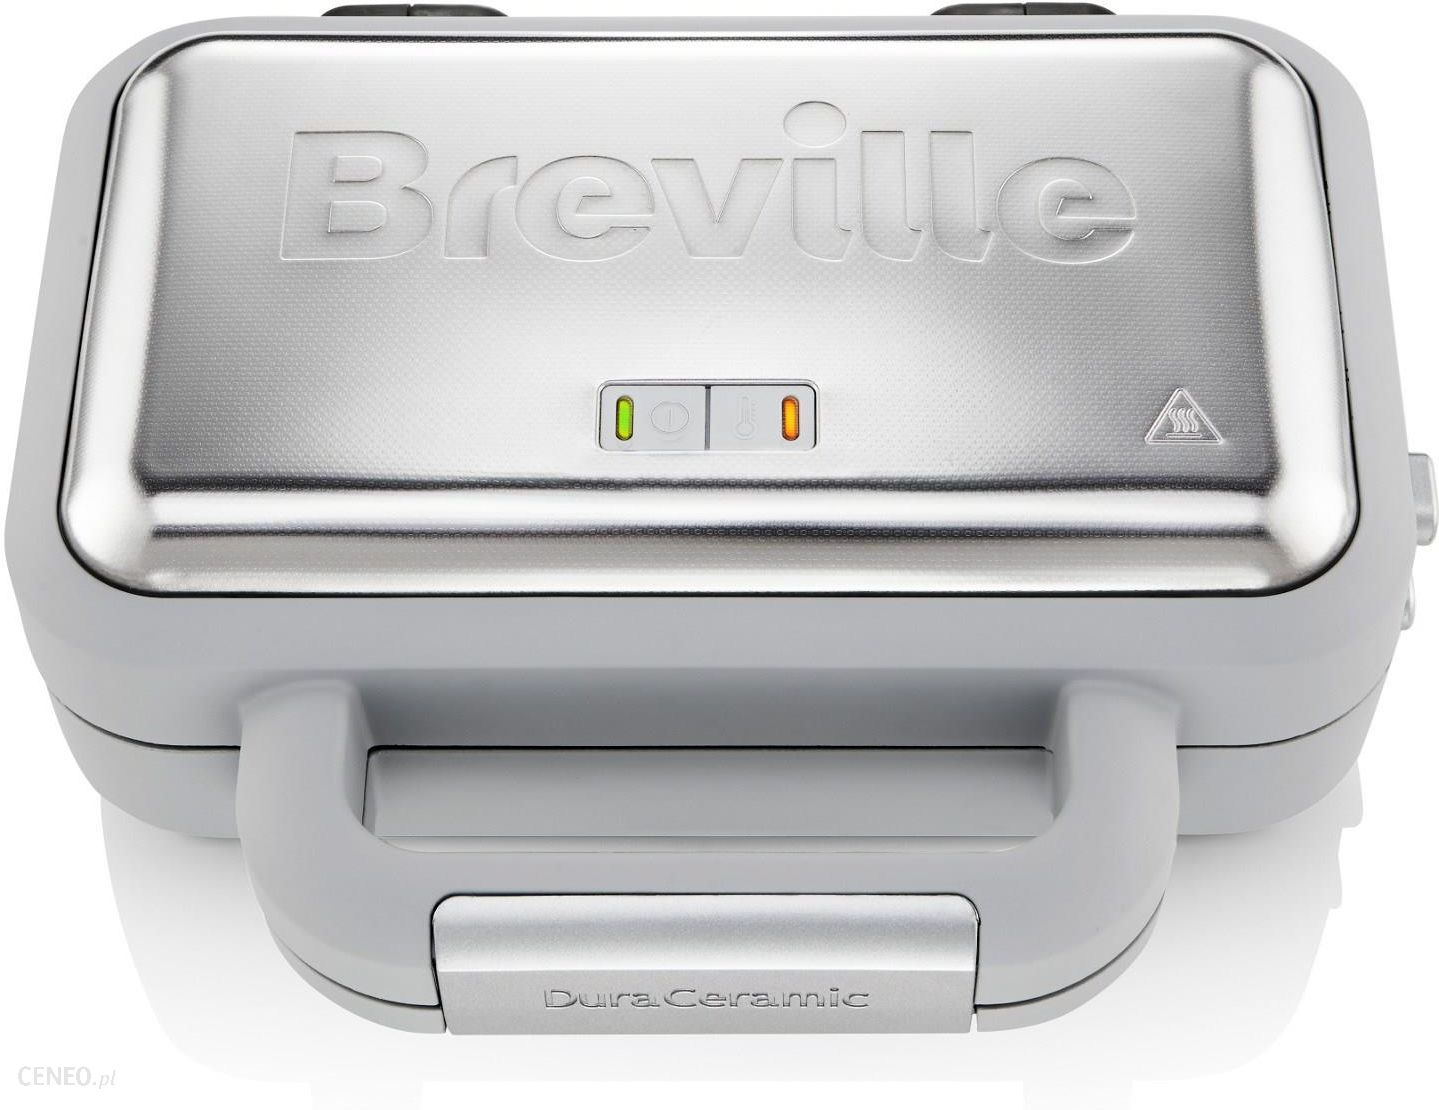 gofrownica Breville